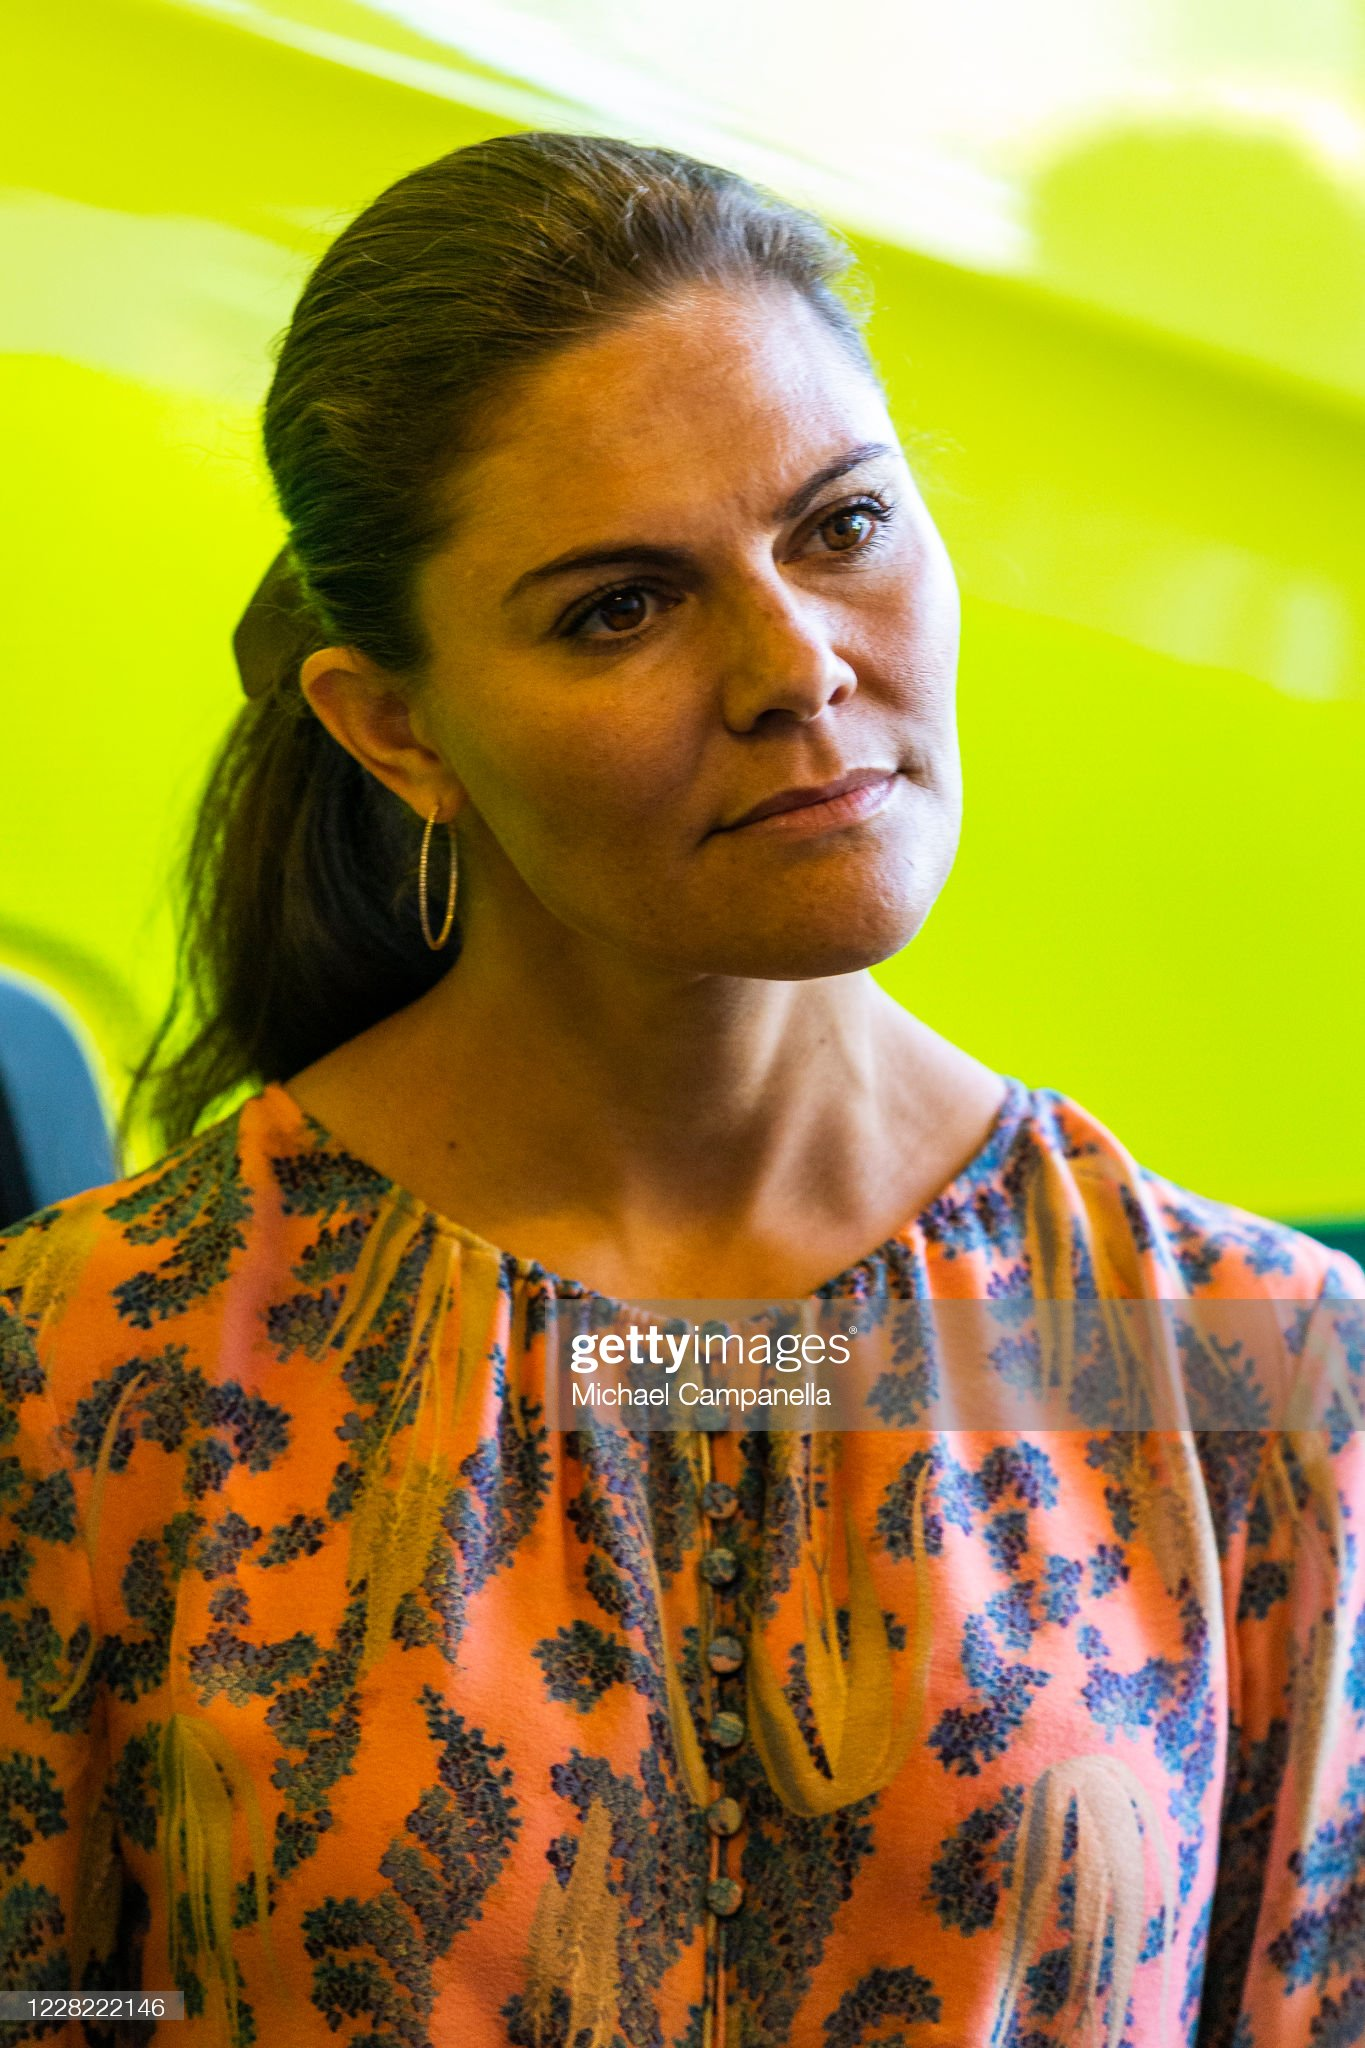 crown-princess-victoria-of-sweden-visits-an-ambulance-station-in-the-picture-id1228222146